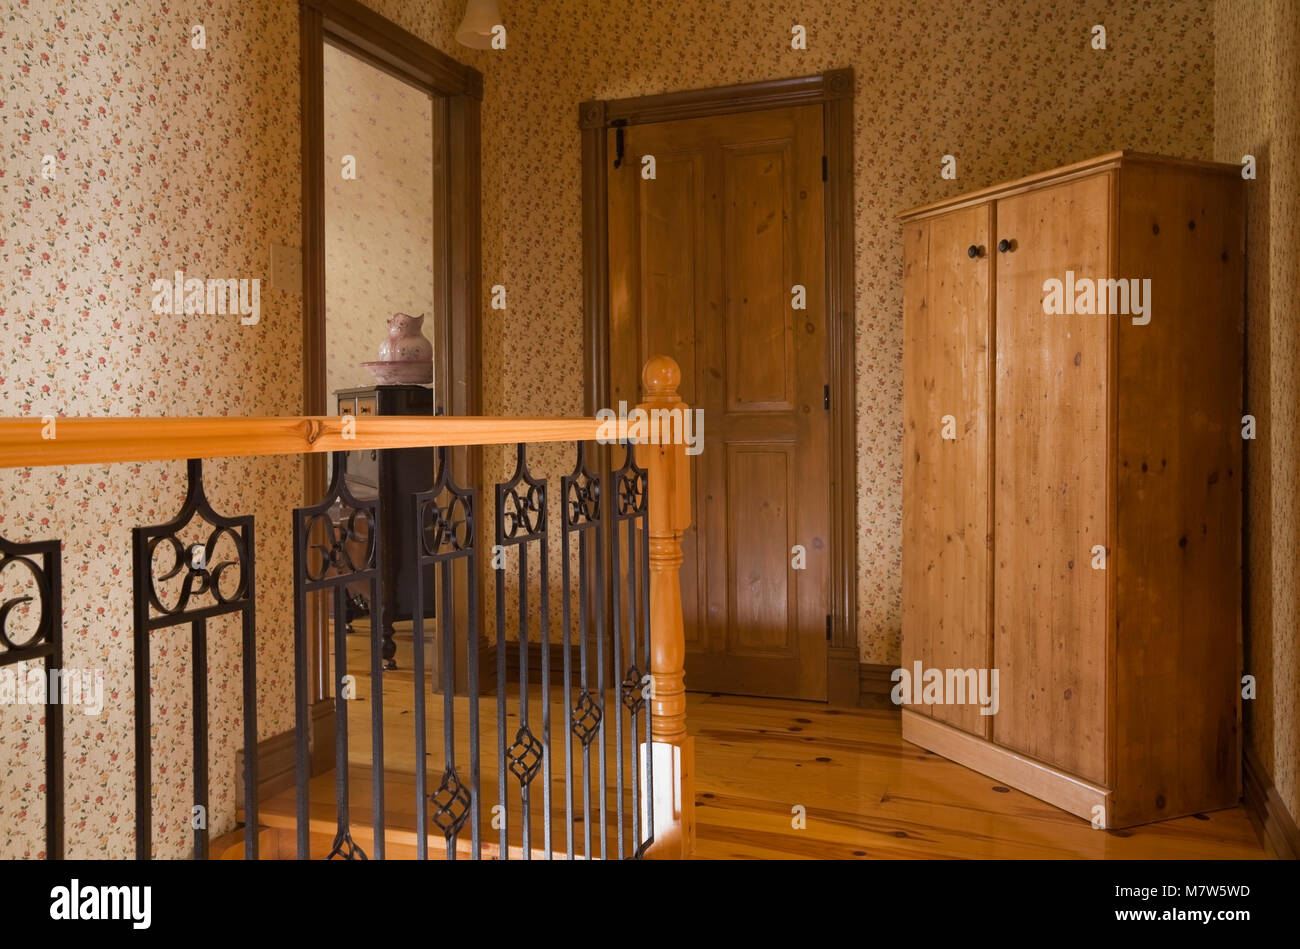 Railing And Armoire On The Upstairs Floor Of A Canadiana Cottage Style  Fieldstone Residential Home Built To Look Old In 2002, Lanaudiere, Quebec,  Cana